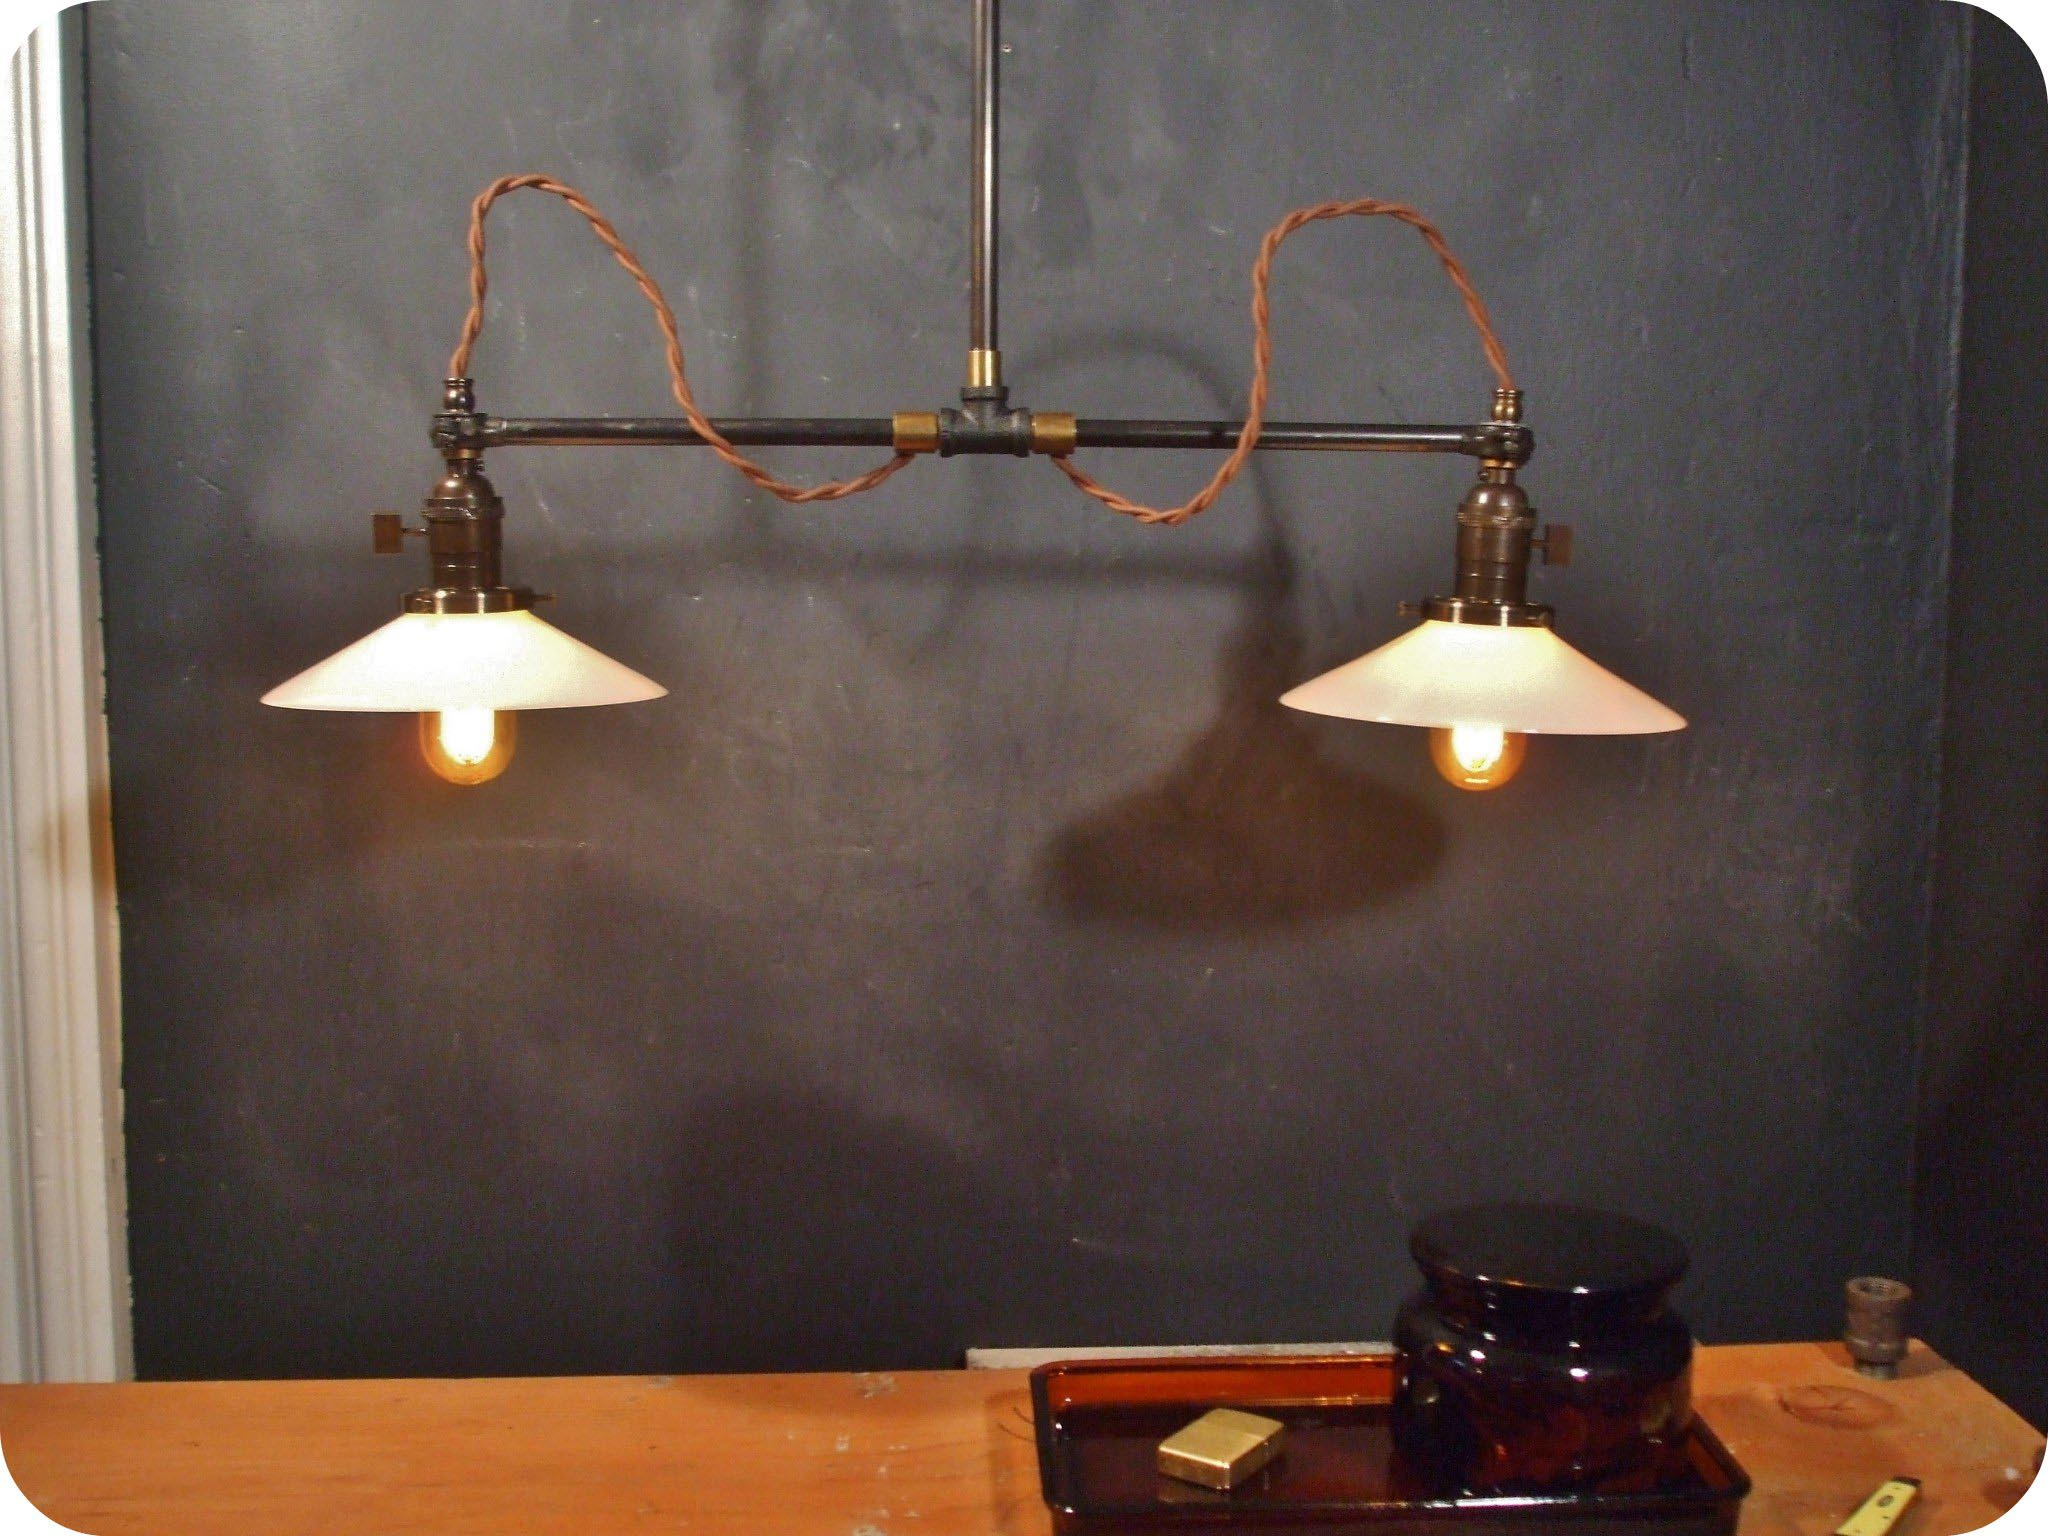 Vintage industrial lighting fixtures light fixtures for Industrial design lighting fixtures